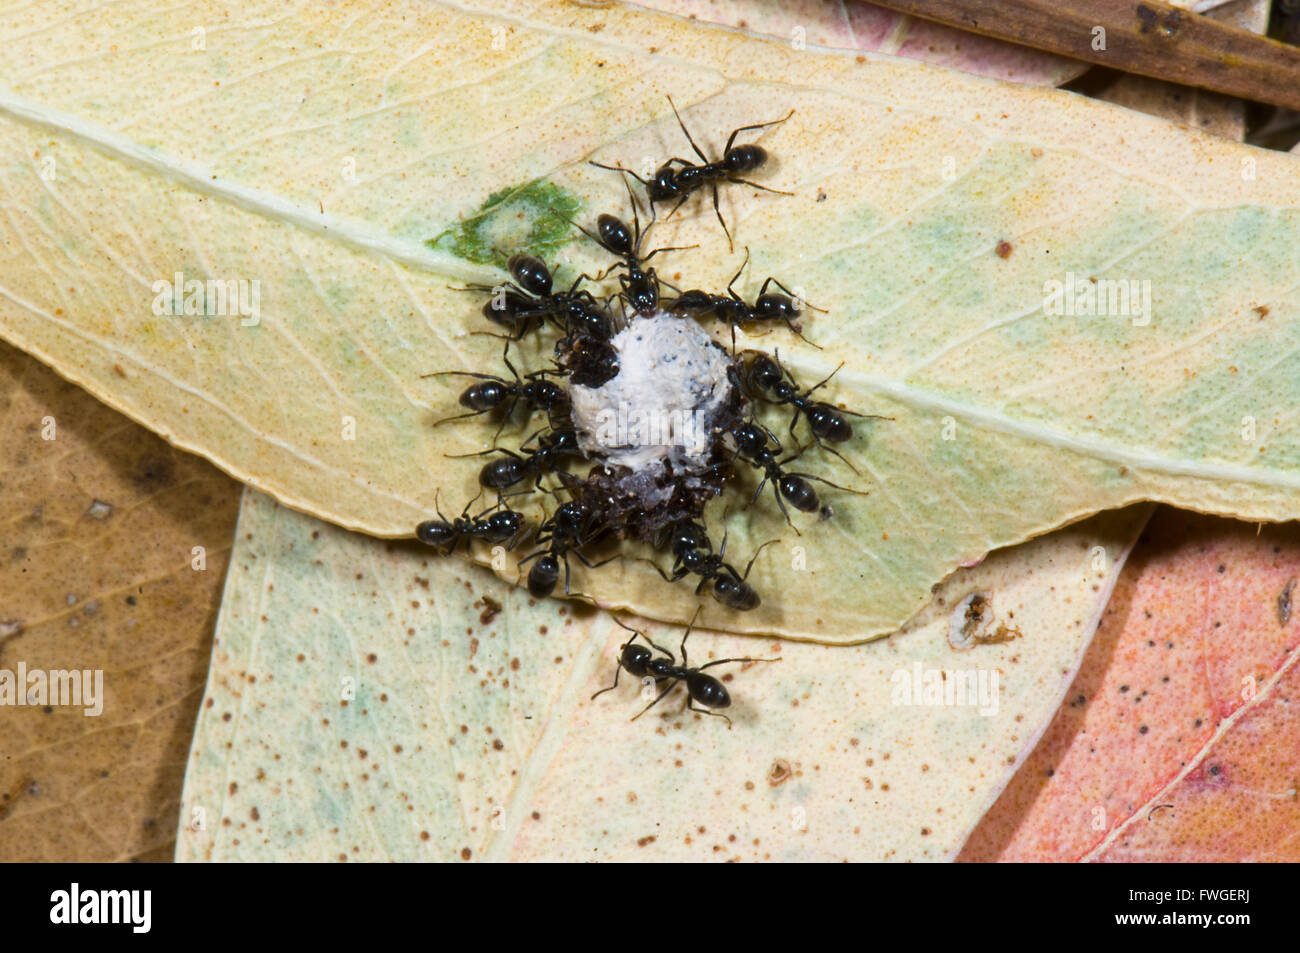 Black Garden Ants Lasius Niger With Food South Australia